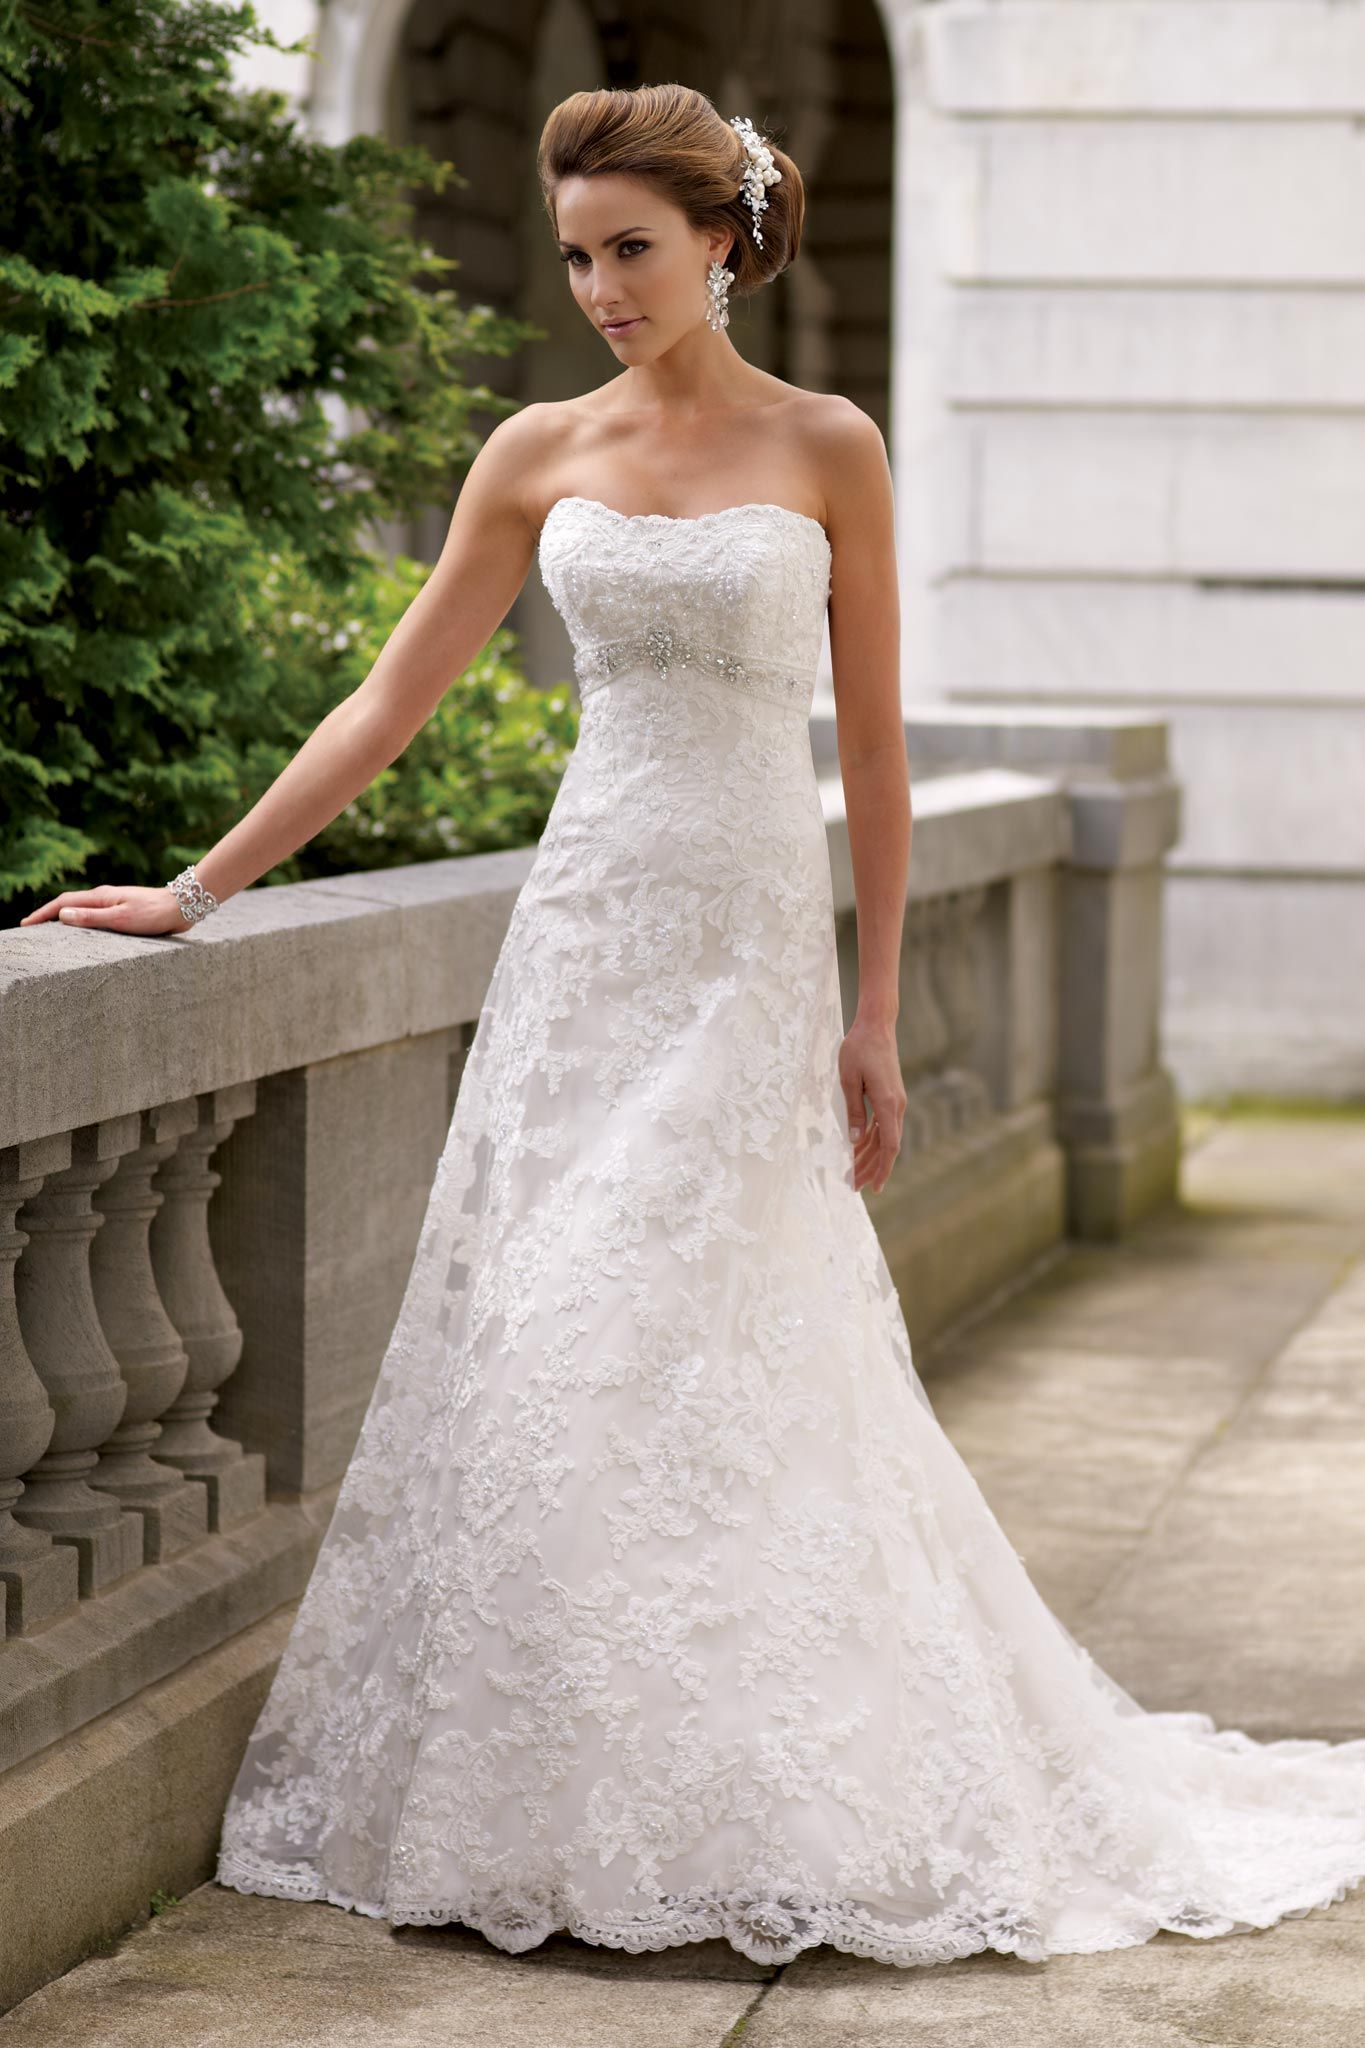 How To Find A Wedding Gown That Flatters Your Figure Wedding